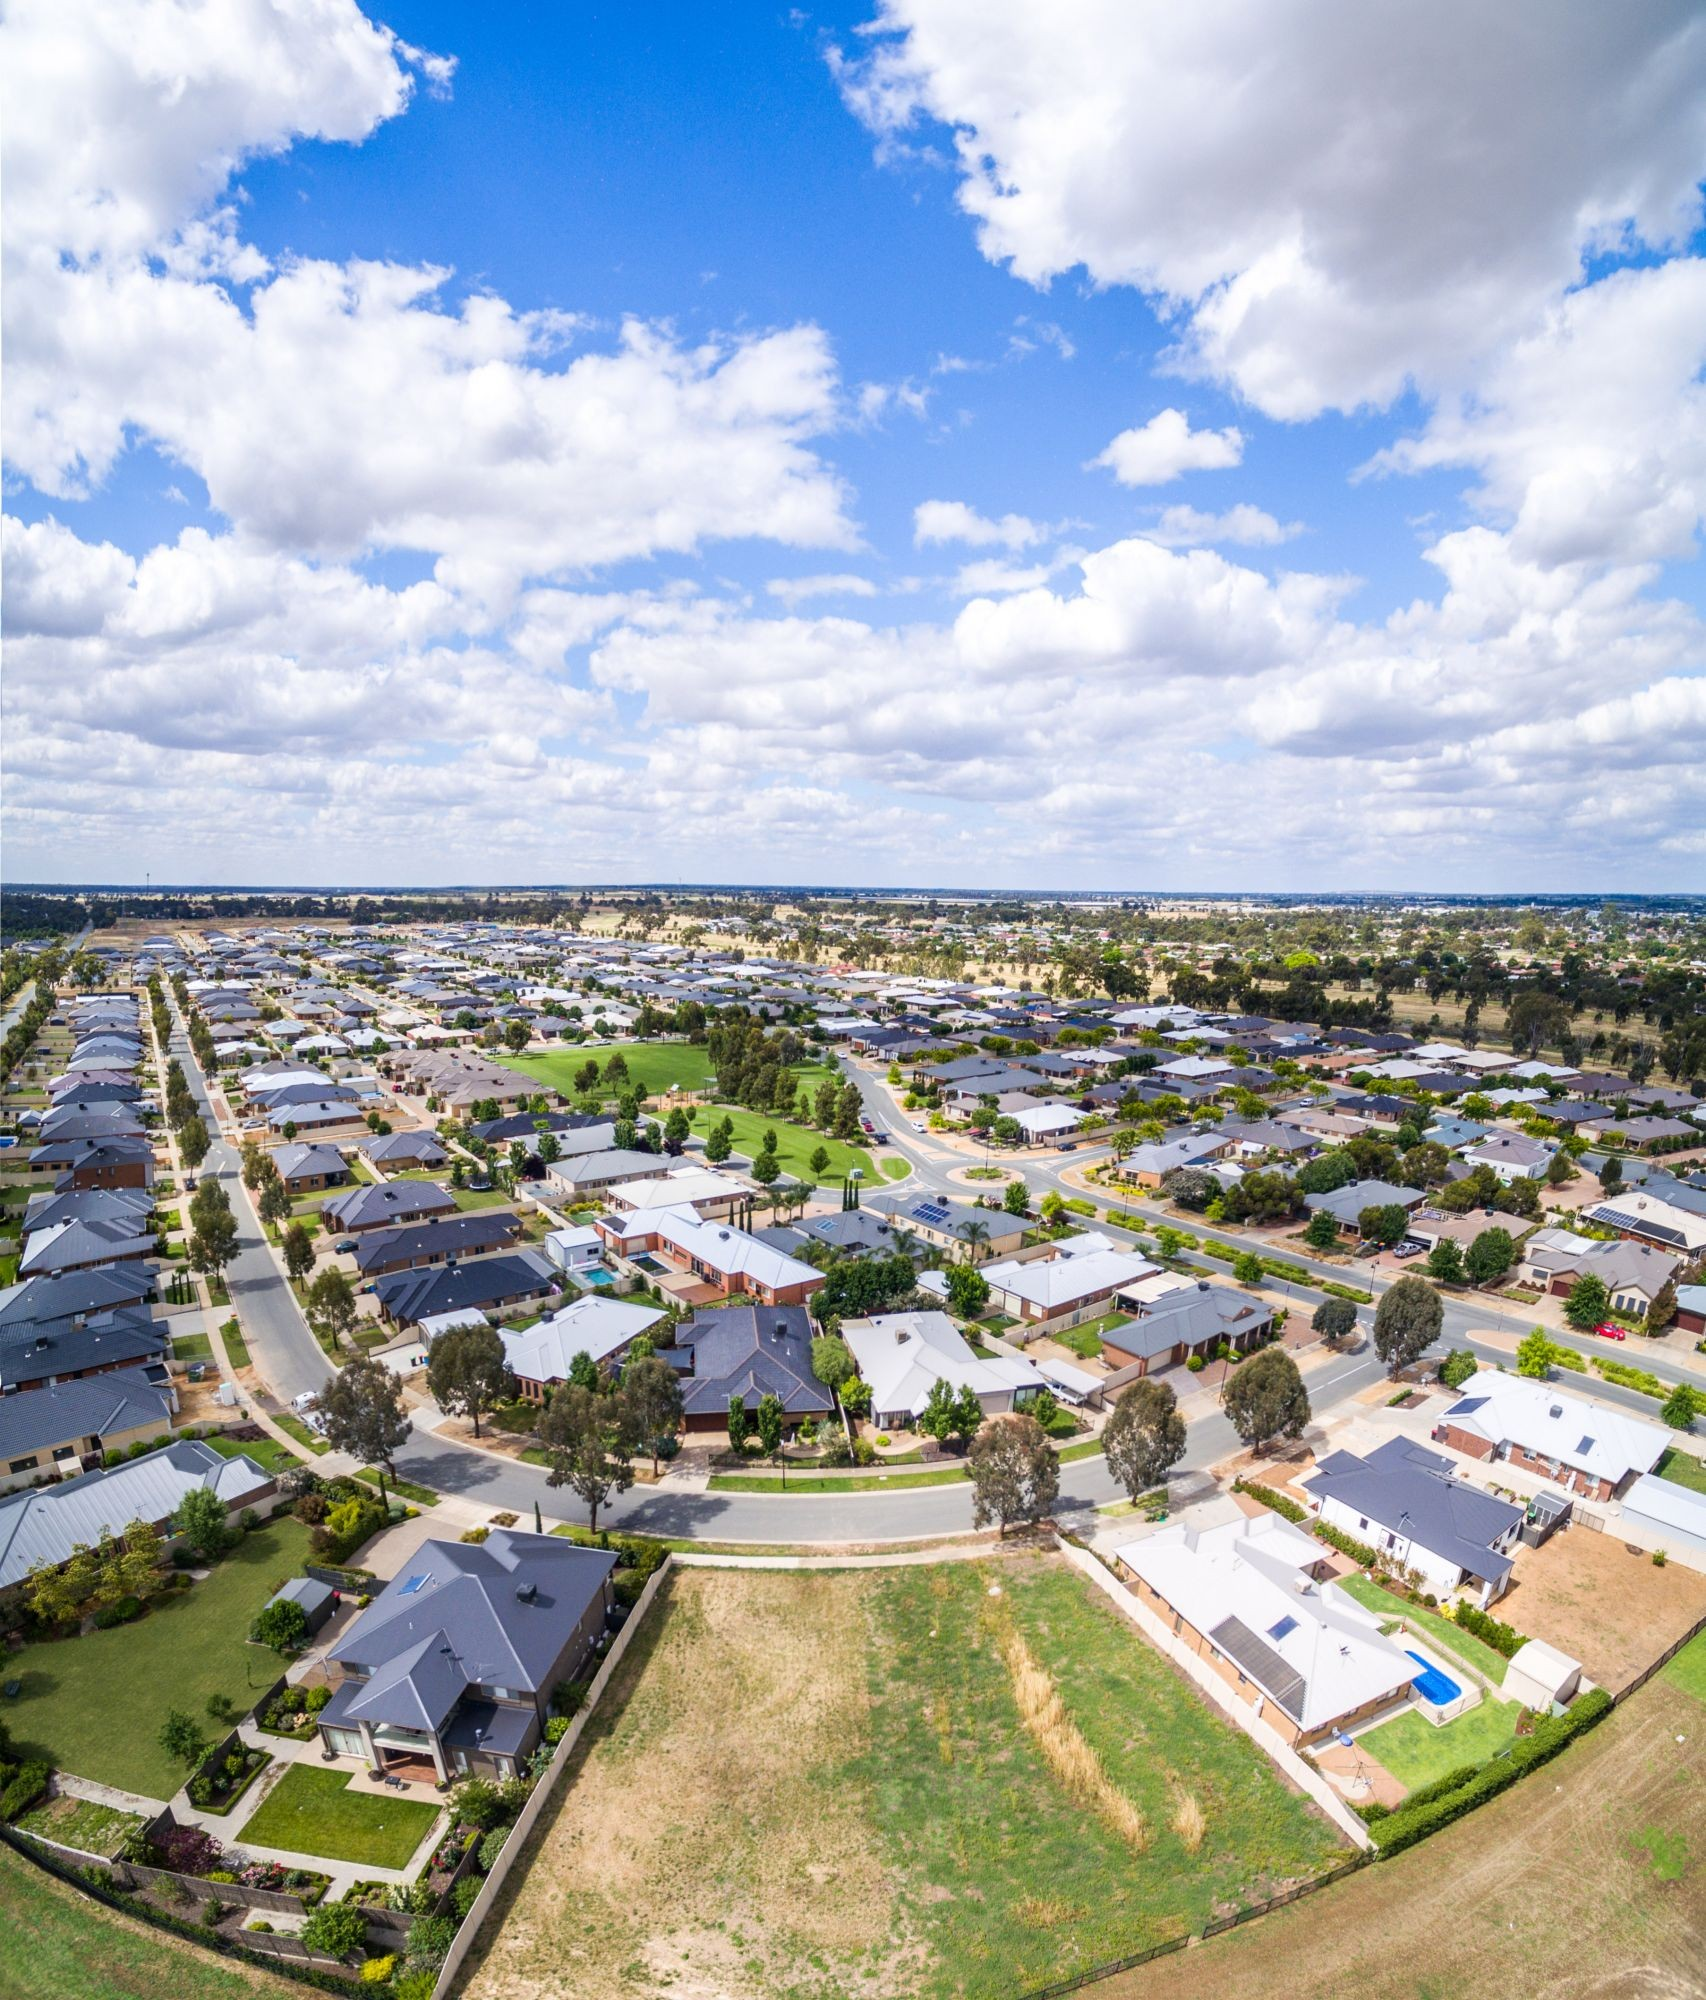 New Community For North East Shepparton Mirage News